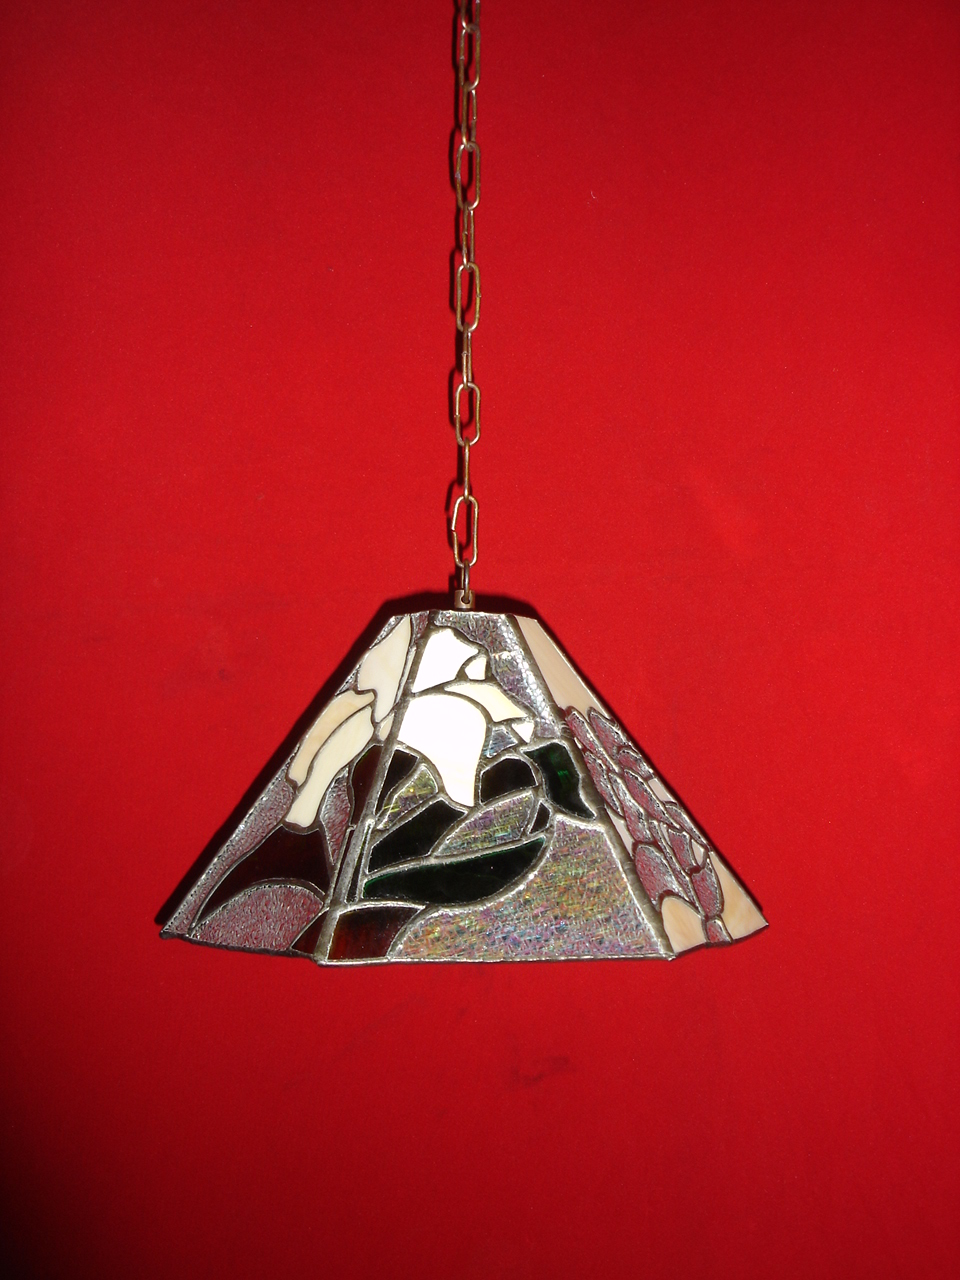 Tiffany Hanging Lamp Item codeB74 wide_11'' high_7'